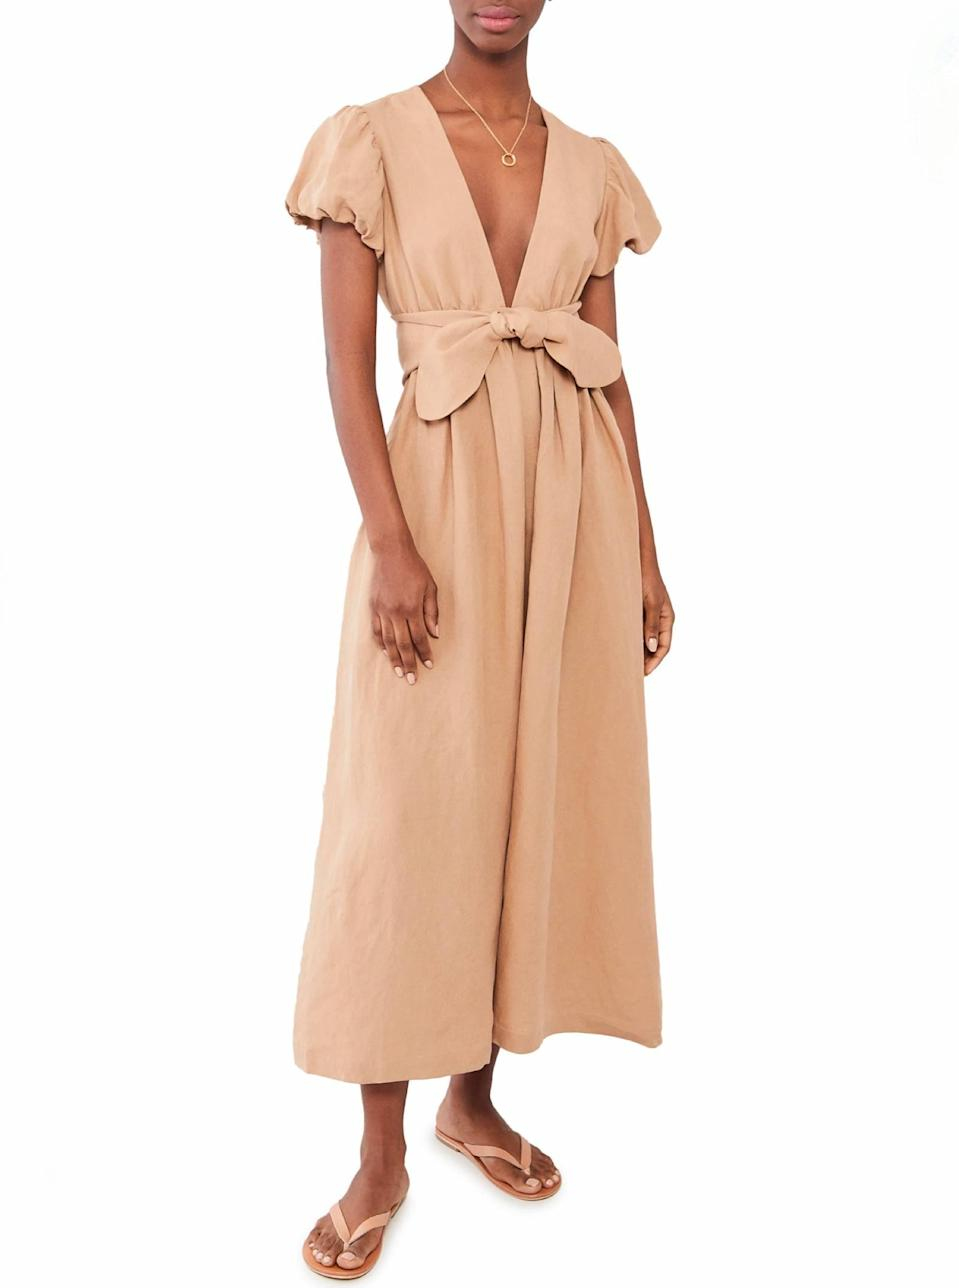 """Mara Hoffman is another sustainable brand doing the work, and the designer has so many effortlessly chic dresses and <a href=""""https://www.glamour.com/story/best-swimsuit-brands?mbid=synd_yahoo_rss"""" rel=""""nofollow noopener"""" target=""""_blank"""" data-ylk=""""slk:swimsuits"""" class=""""link rapid-noclick-resp"""">swimsuits</a> to choose from. Can you think of a summer activity this sandstone V-neck number wouldn't be fit for? Us either. $450, Shopbop. <a href=""""https://www.shopbop.com/savannah-dress-mara-hoffman/vp/v=1/1585099276.htm?"""" rel=""""nofollow noopener"""" target=""""_blank"""" data-ylk=""""slk:Get it now!"""" class=""""link rapid-noclick-resp"""">Get it now!</a>"""